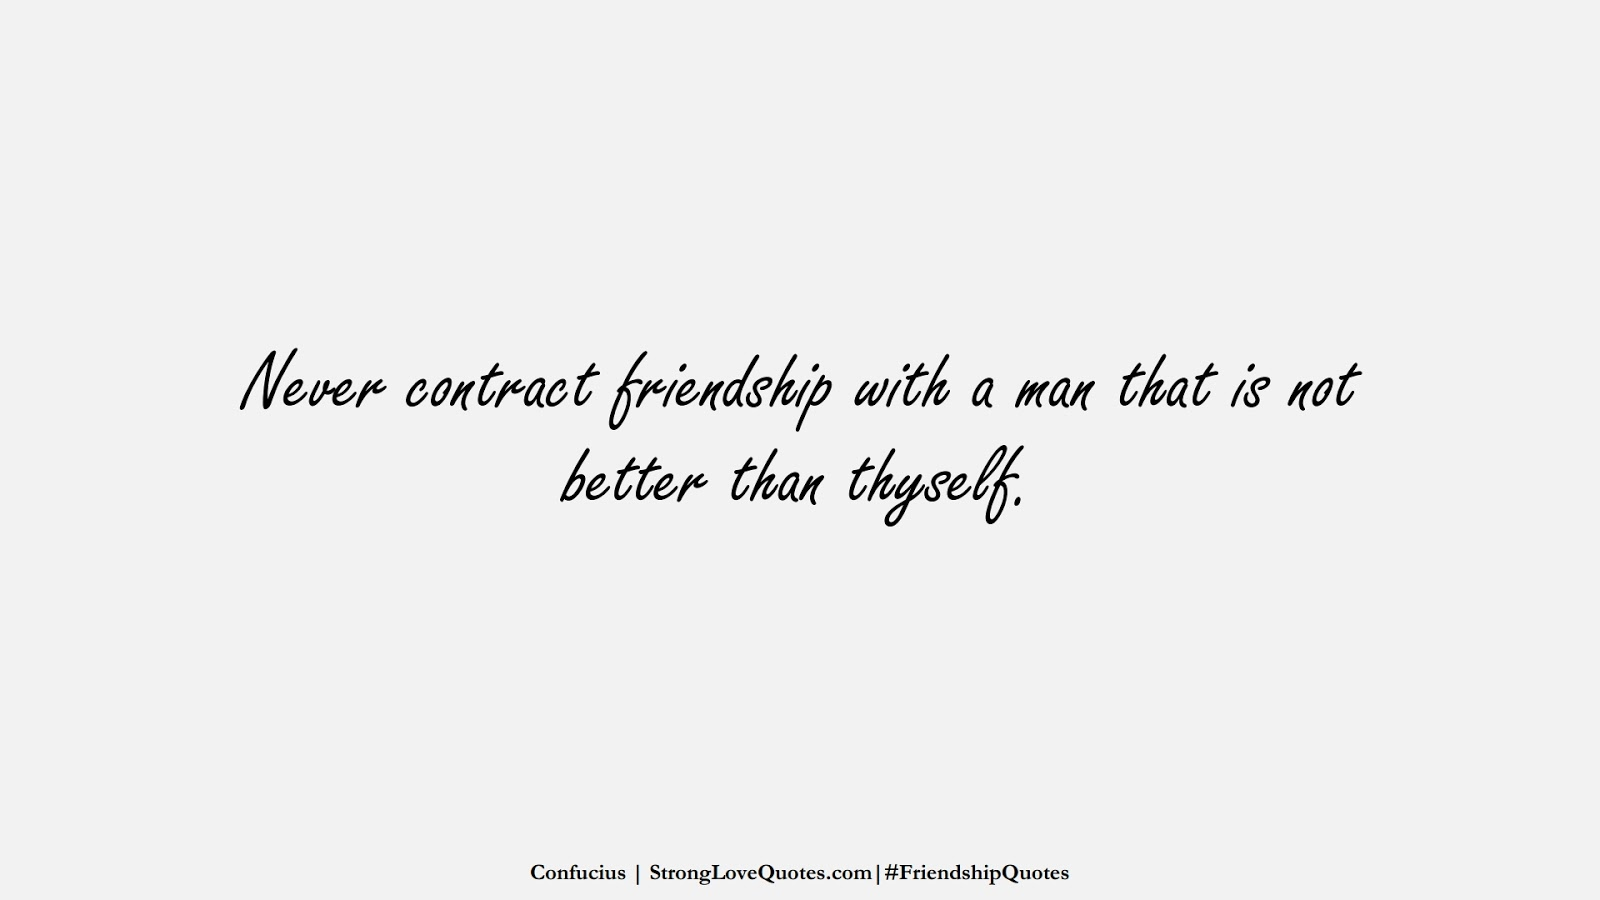 Never contract friendship with a man that is not better than thyself. (Confucius);  #FriendshipQuotes